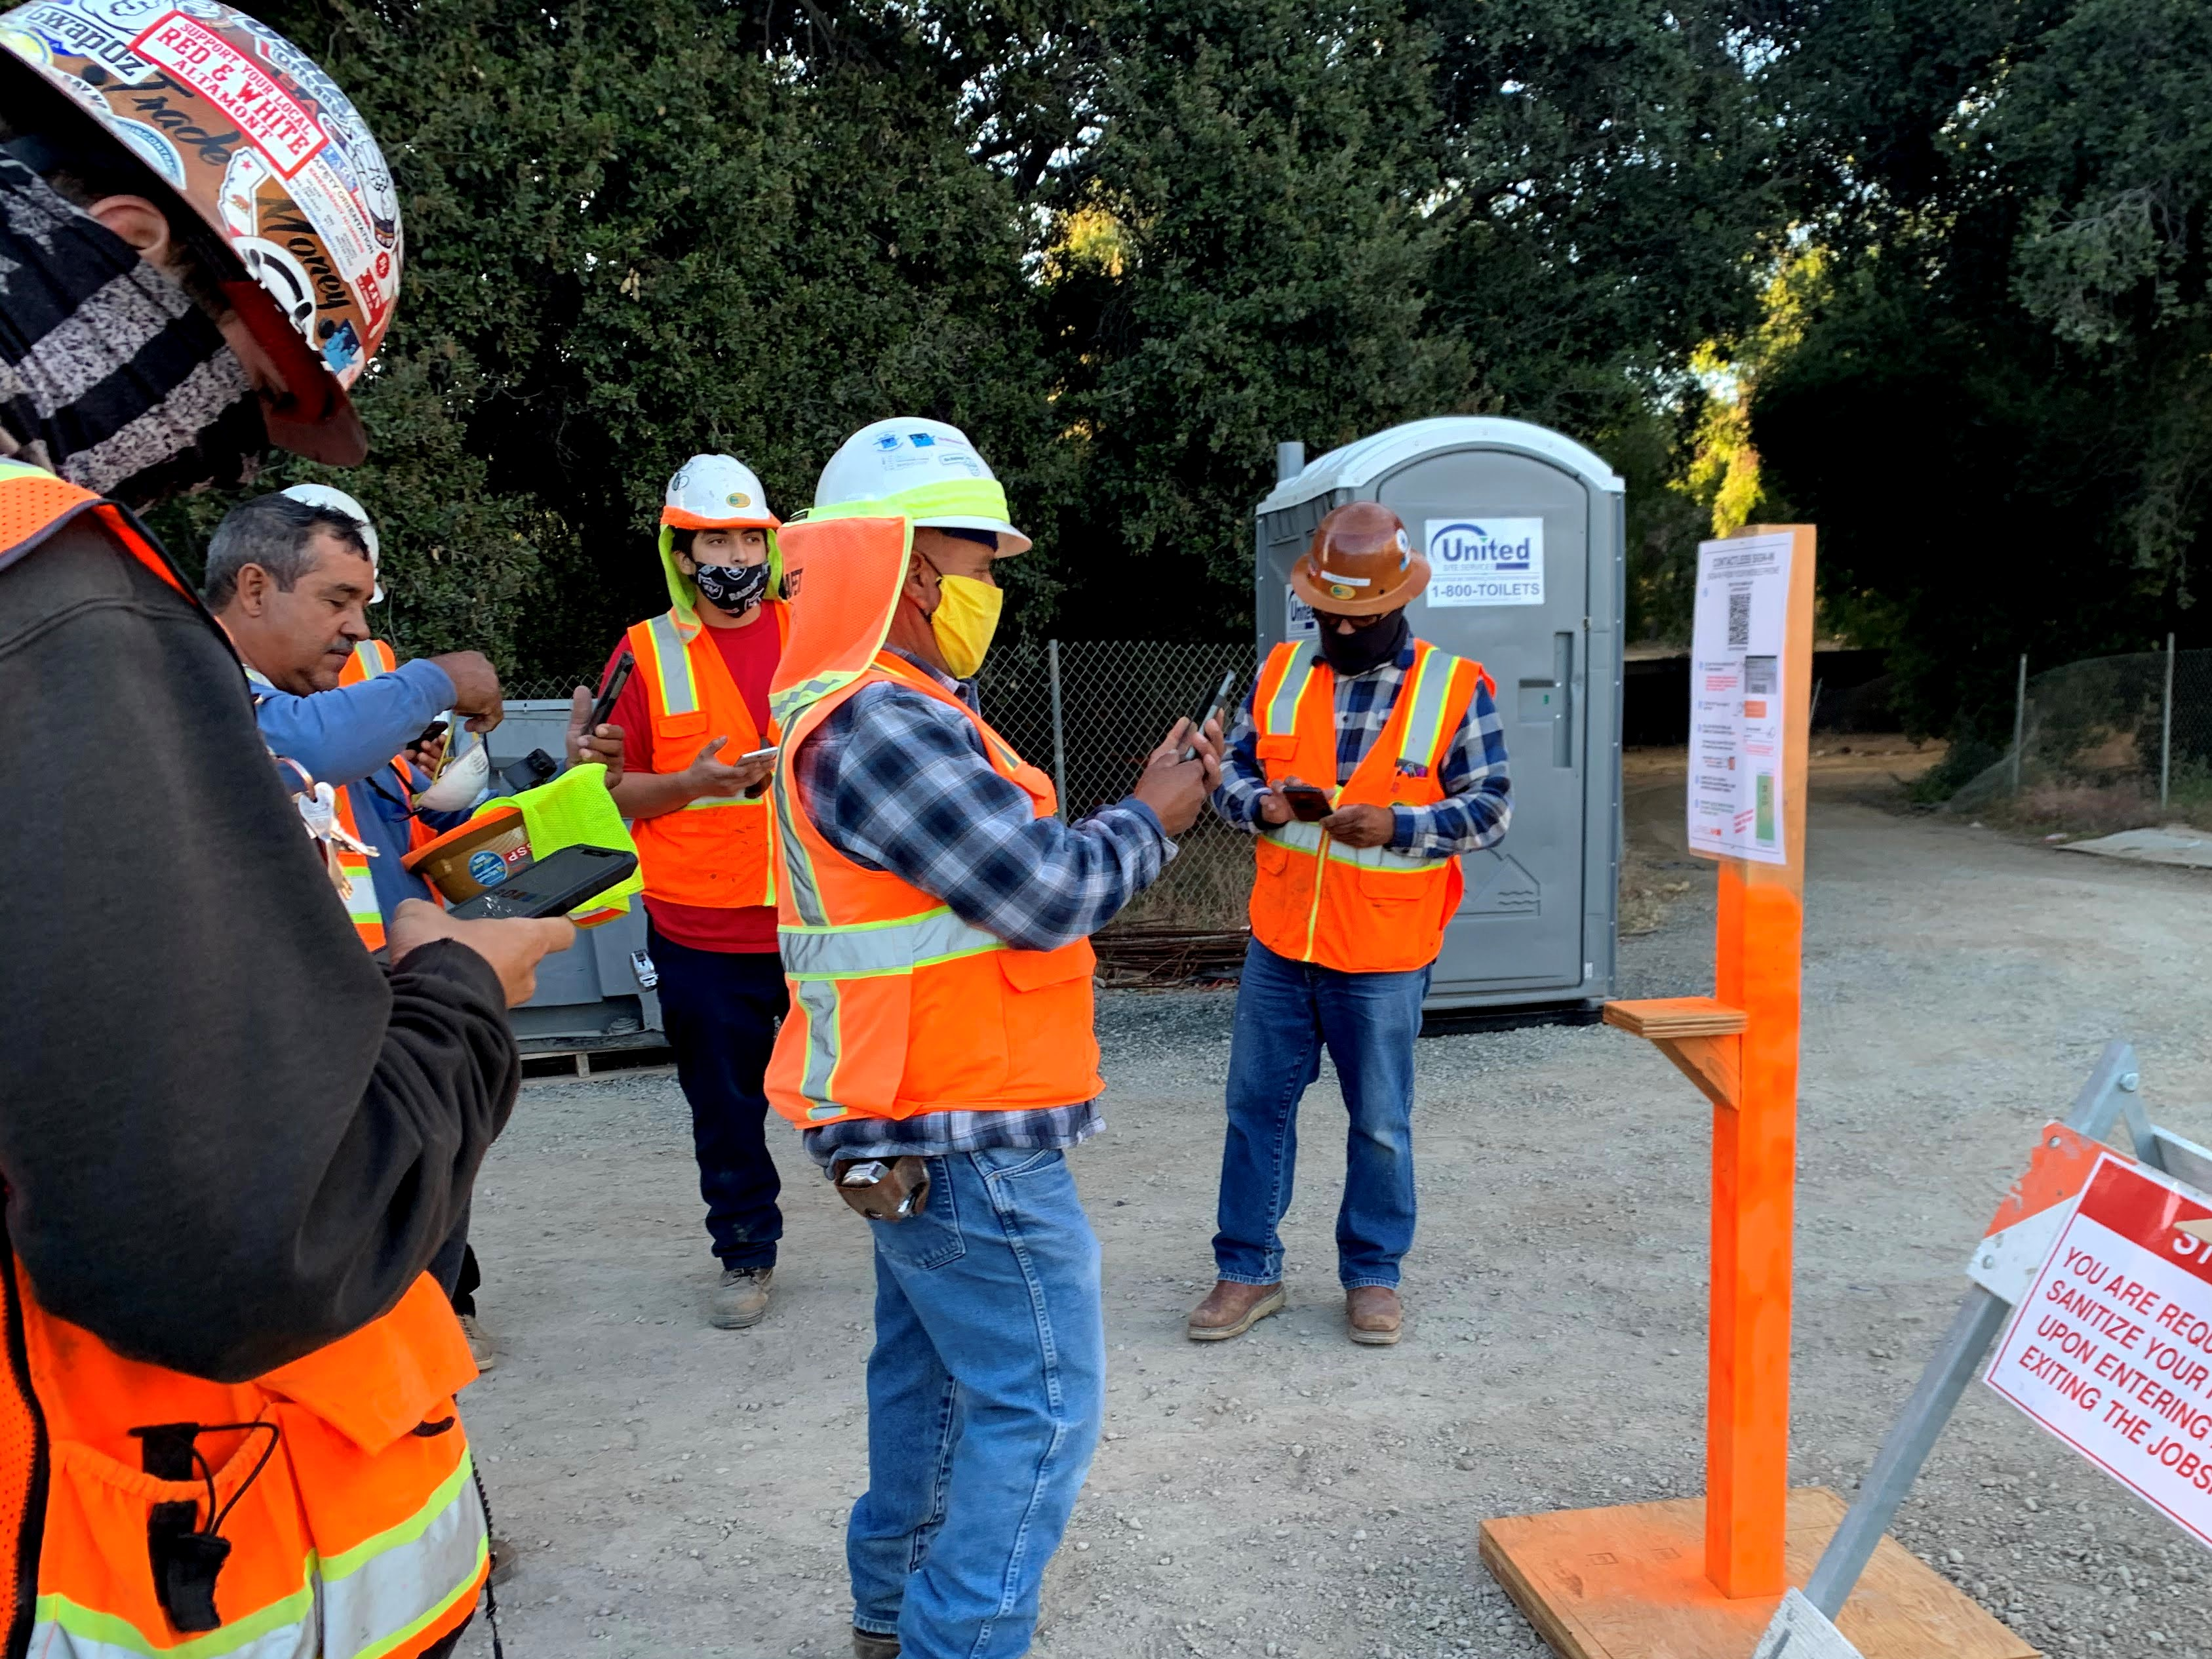 Construction workers using hand sanitizer.